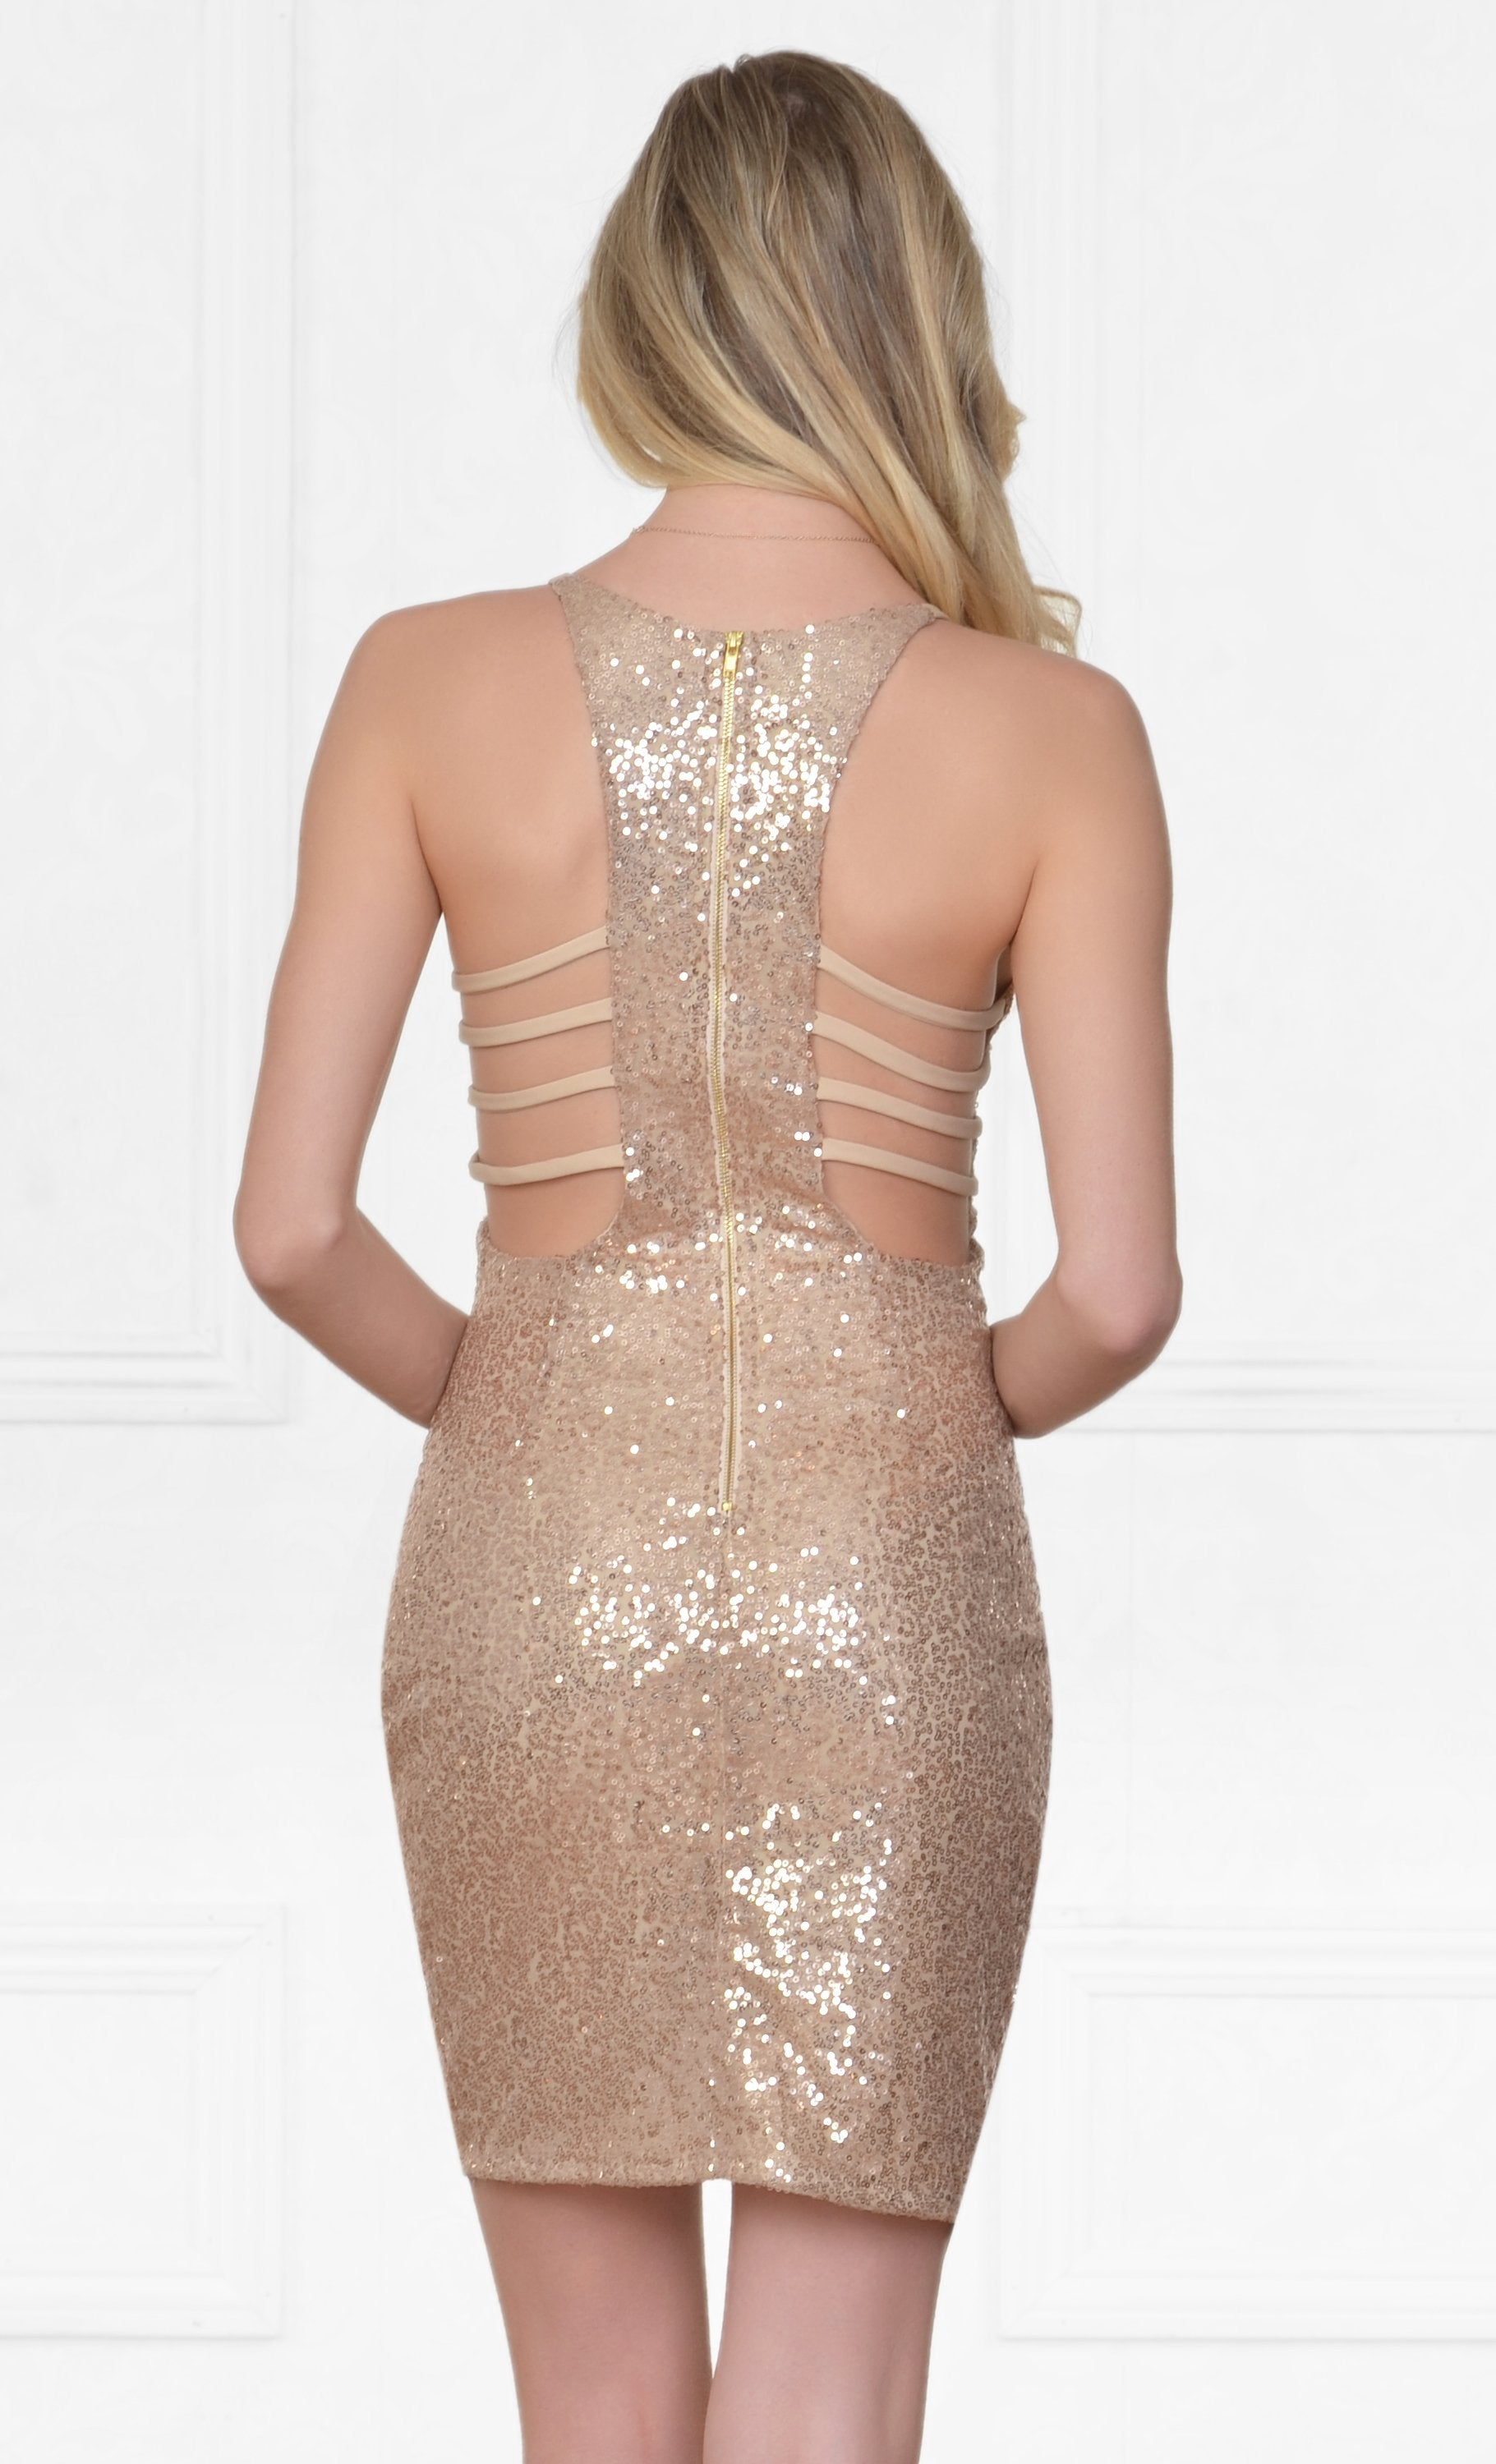 Indie XO Glam Night Out Sexy V Neck Wrap Front Cut Out Back Sleeveless Sequin Mini Dress - Just Ours!